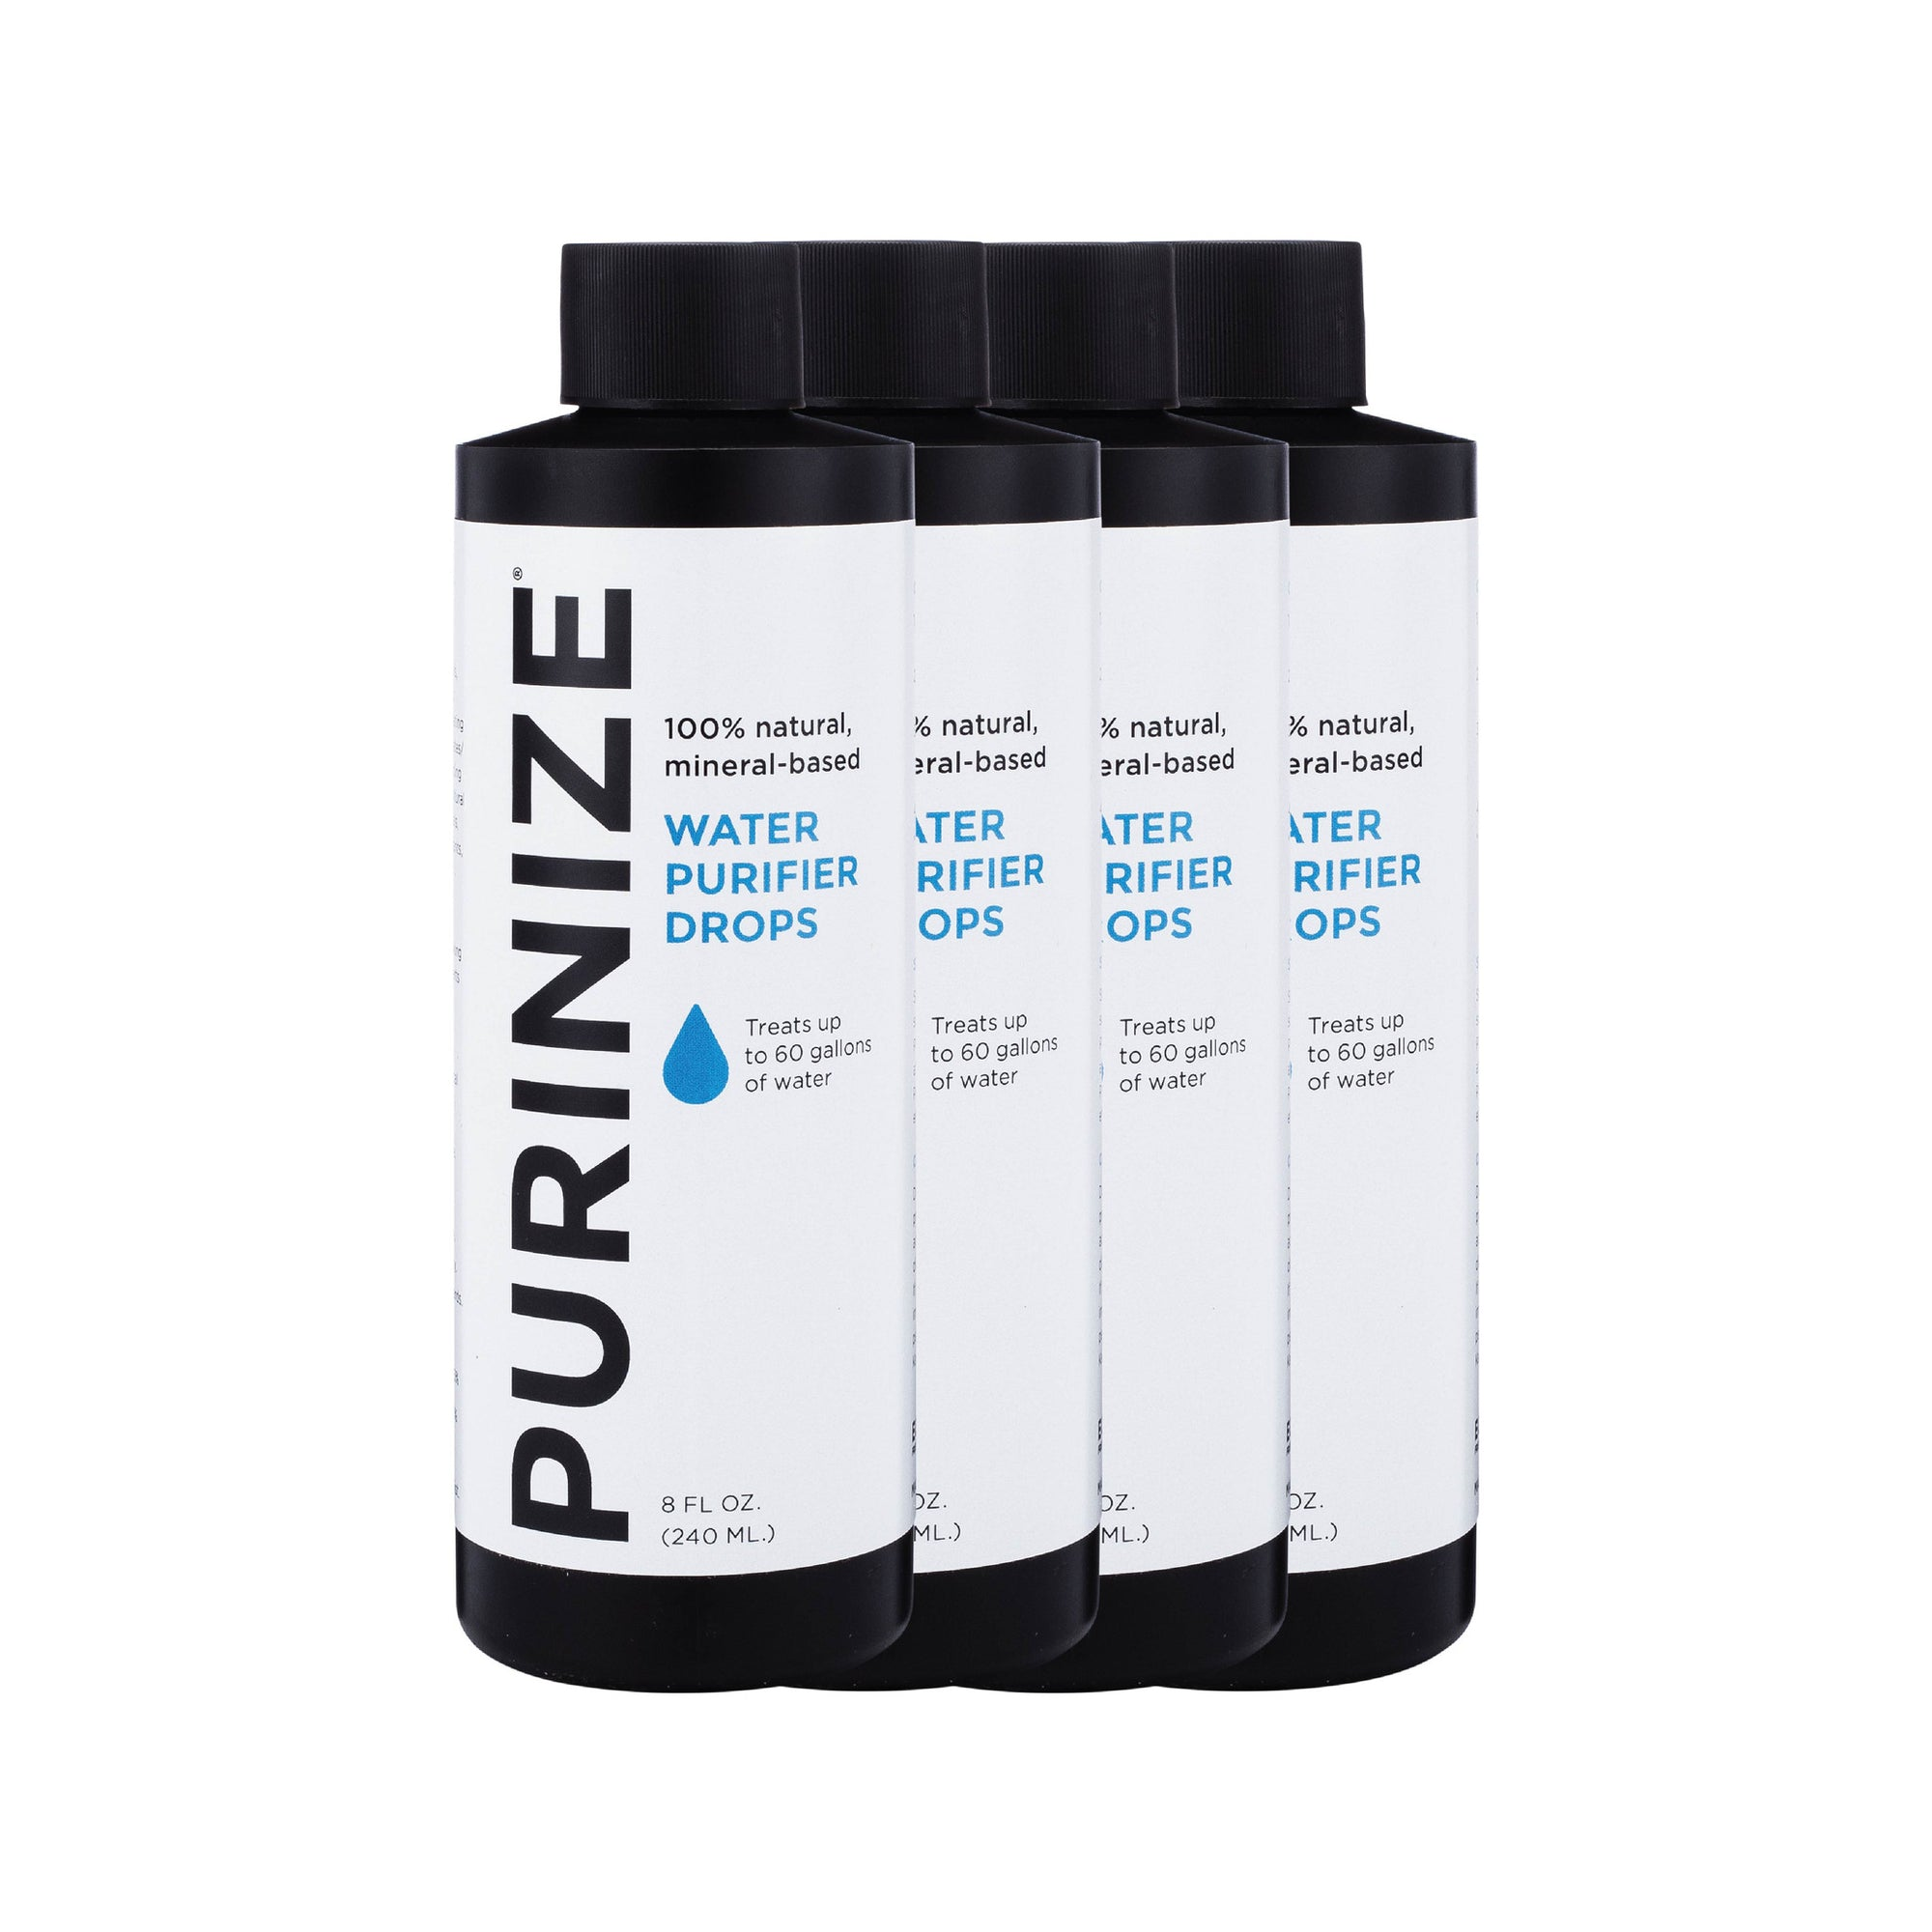 PURINIZE® WATER PURIFIER DROPS 8 OZ. 4-PACK (15% OFF)